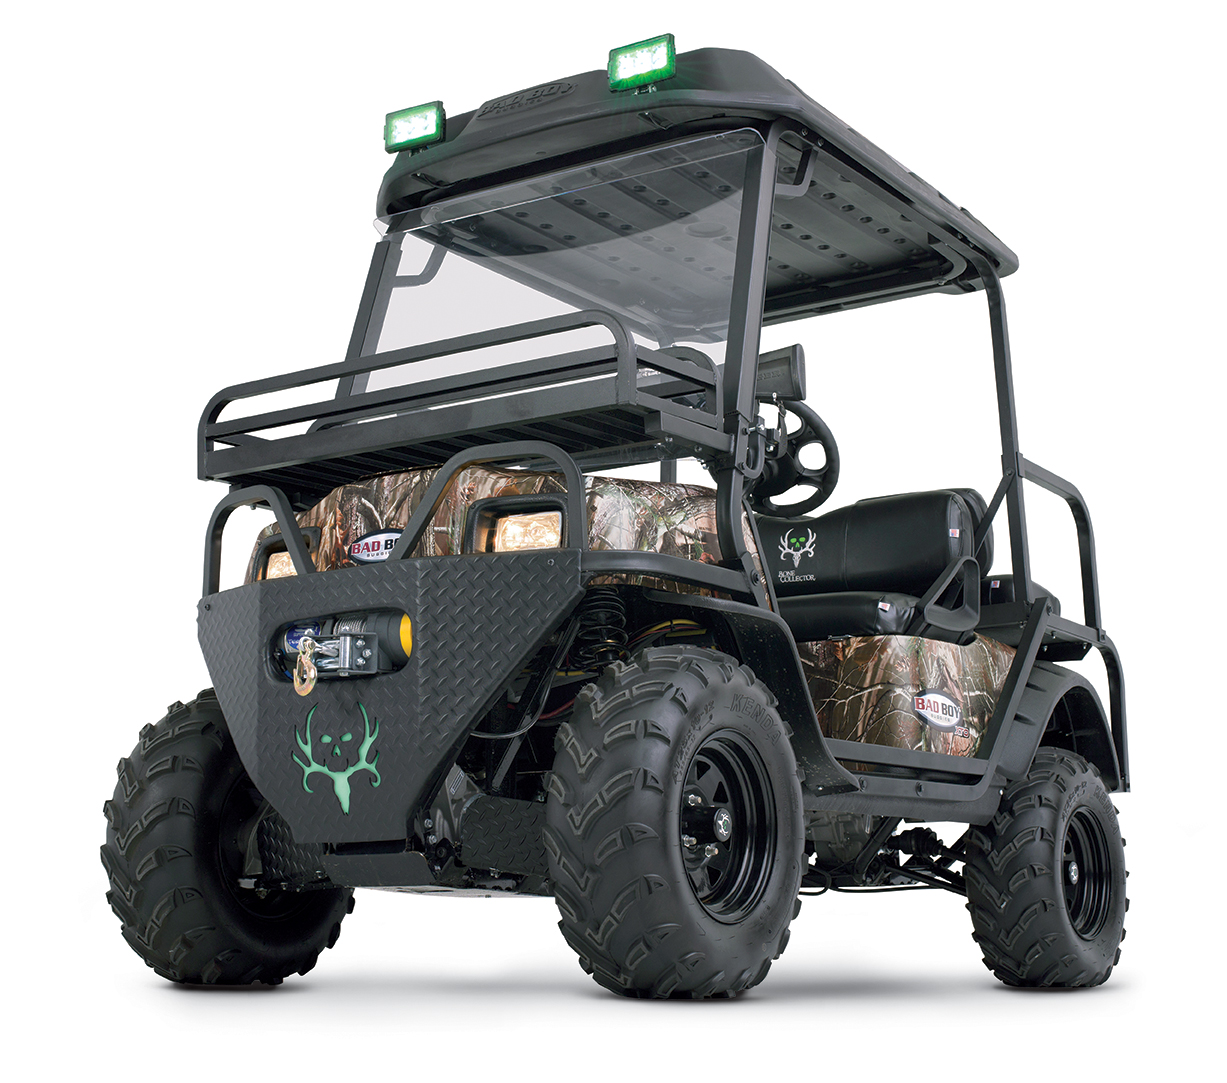 Textron Specialized Vehicles Recalls Bad Boy Off-Road Utility ... on kawasaki battery wiring diagram, gem battery wiring diagram, yamaha battery wiring diagram, club car battery wiring diagram, e-z-go battery wiring diagram, kenworth battery wiring diagram, mitsubishi battery wiring diagram, john deere battery wiring diagram, nissan battery wiring diagram, jayco battery wiring diagram,